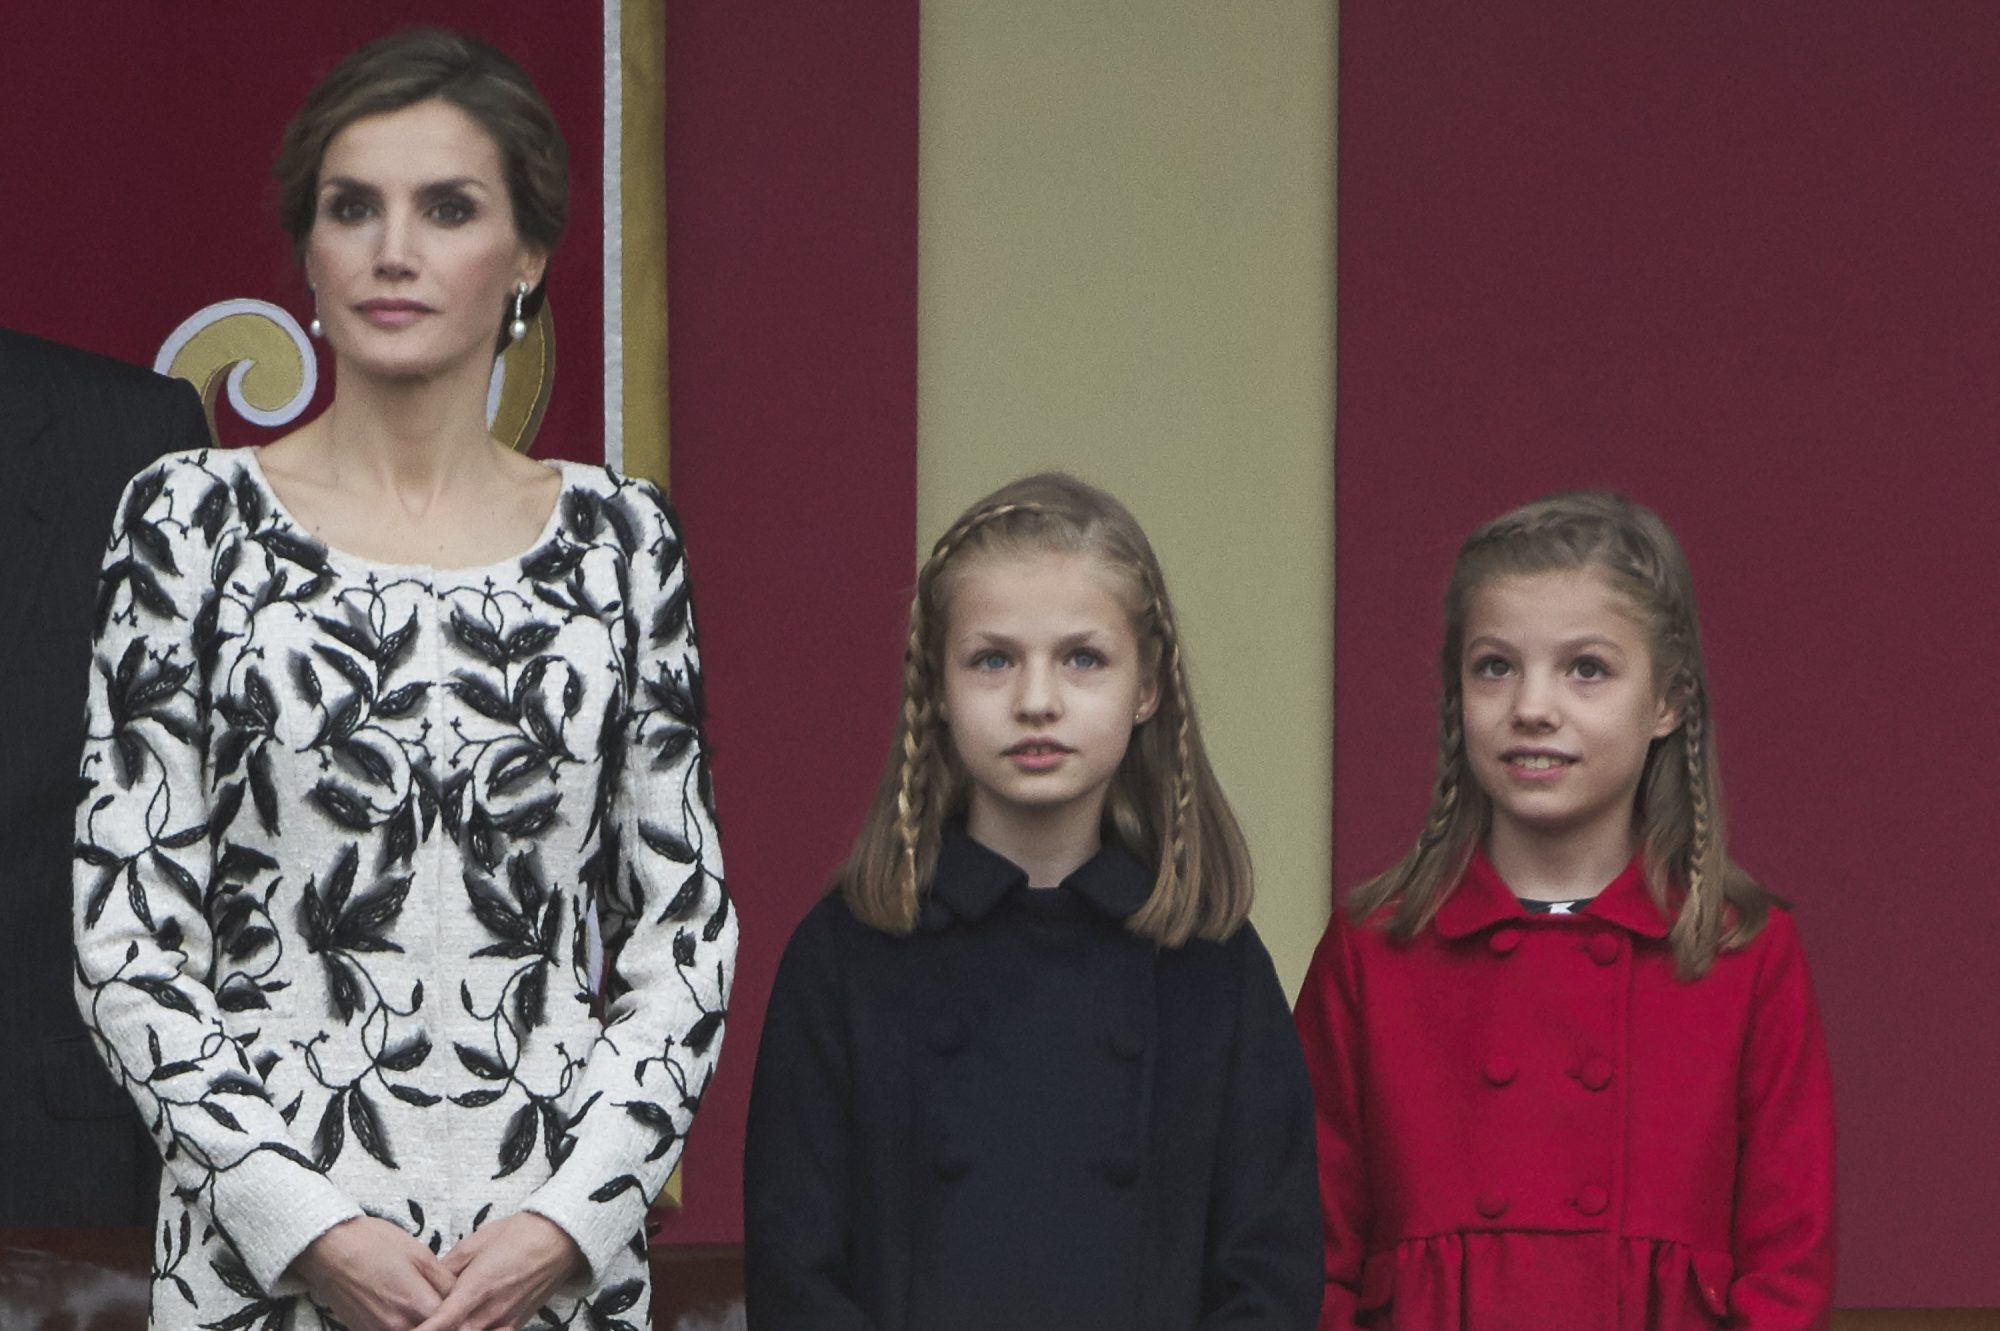 MADRID, SPAIN - OCTOBER 12: (L-R) Queen Letizia of Spain, Princess Leonor of Spain and Princess Sofia of Spain attend the National Day military parade on October 12, 2016 in Madrid, Spain. (Photo by Carlos Alvarez/Getty Images)